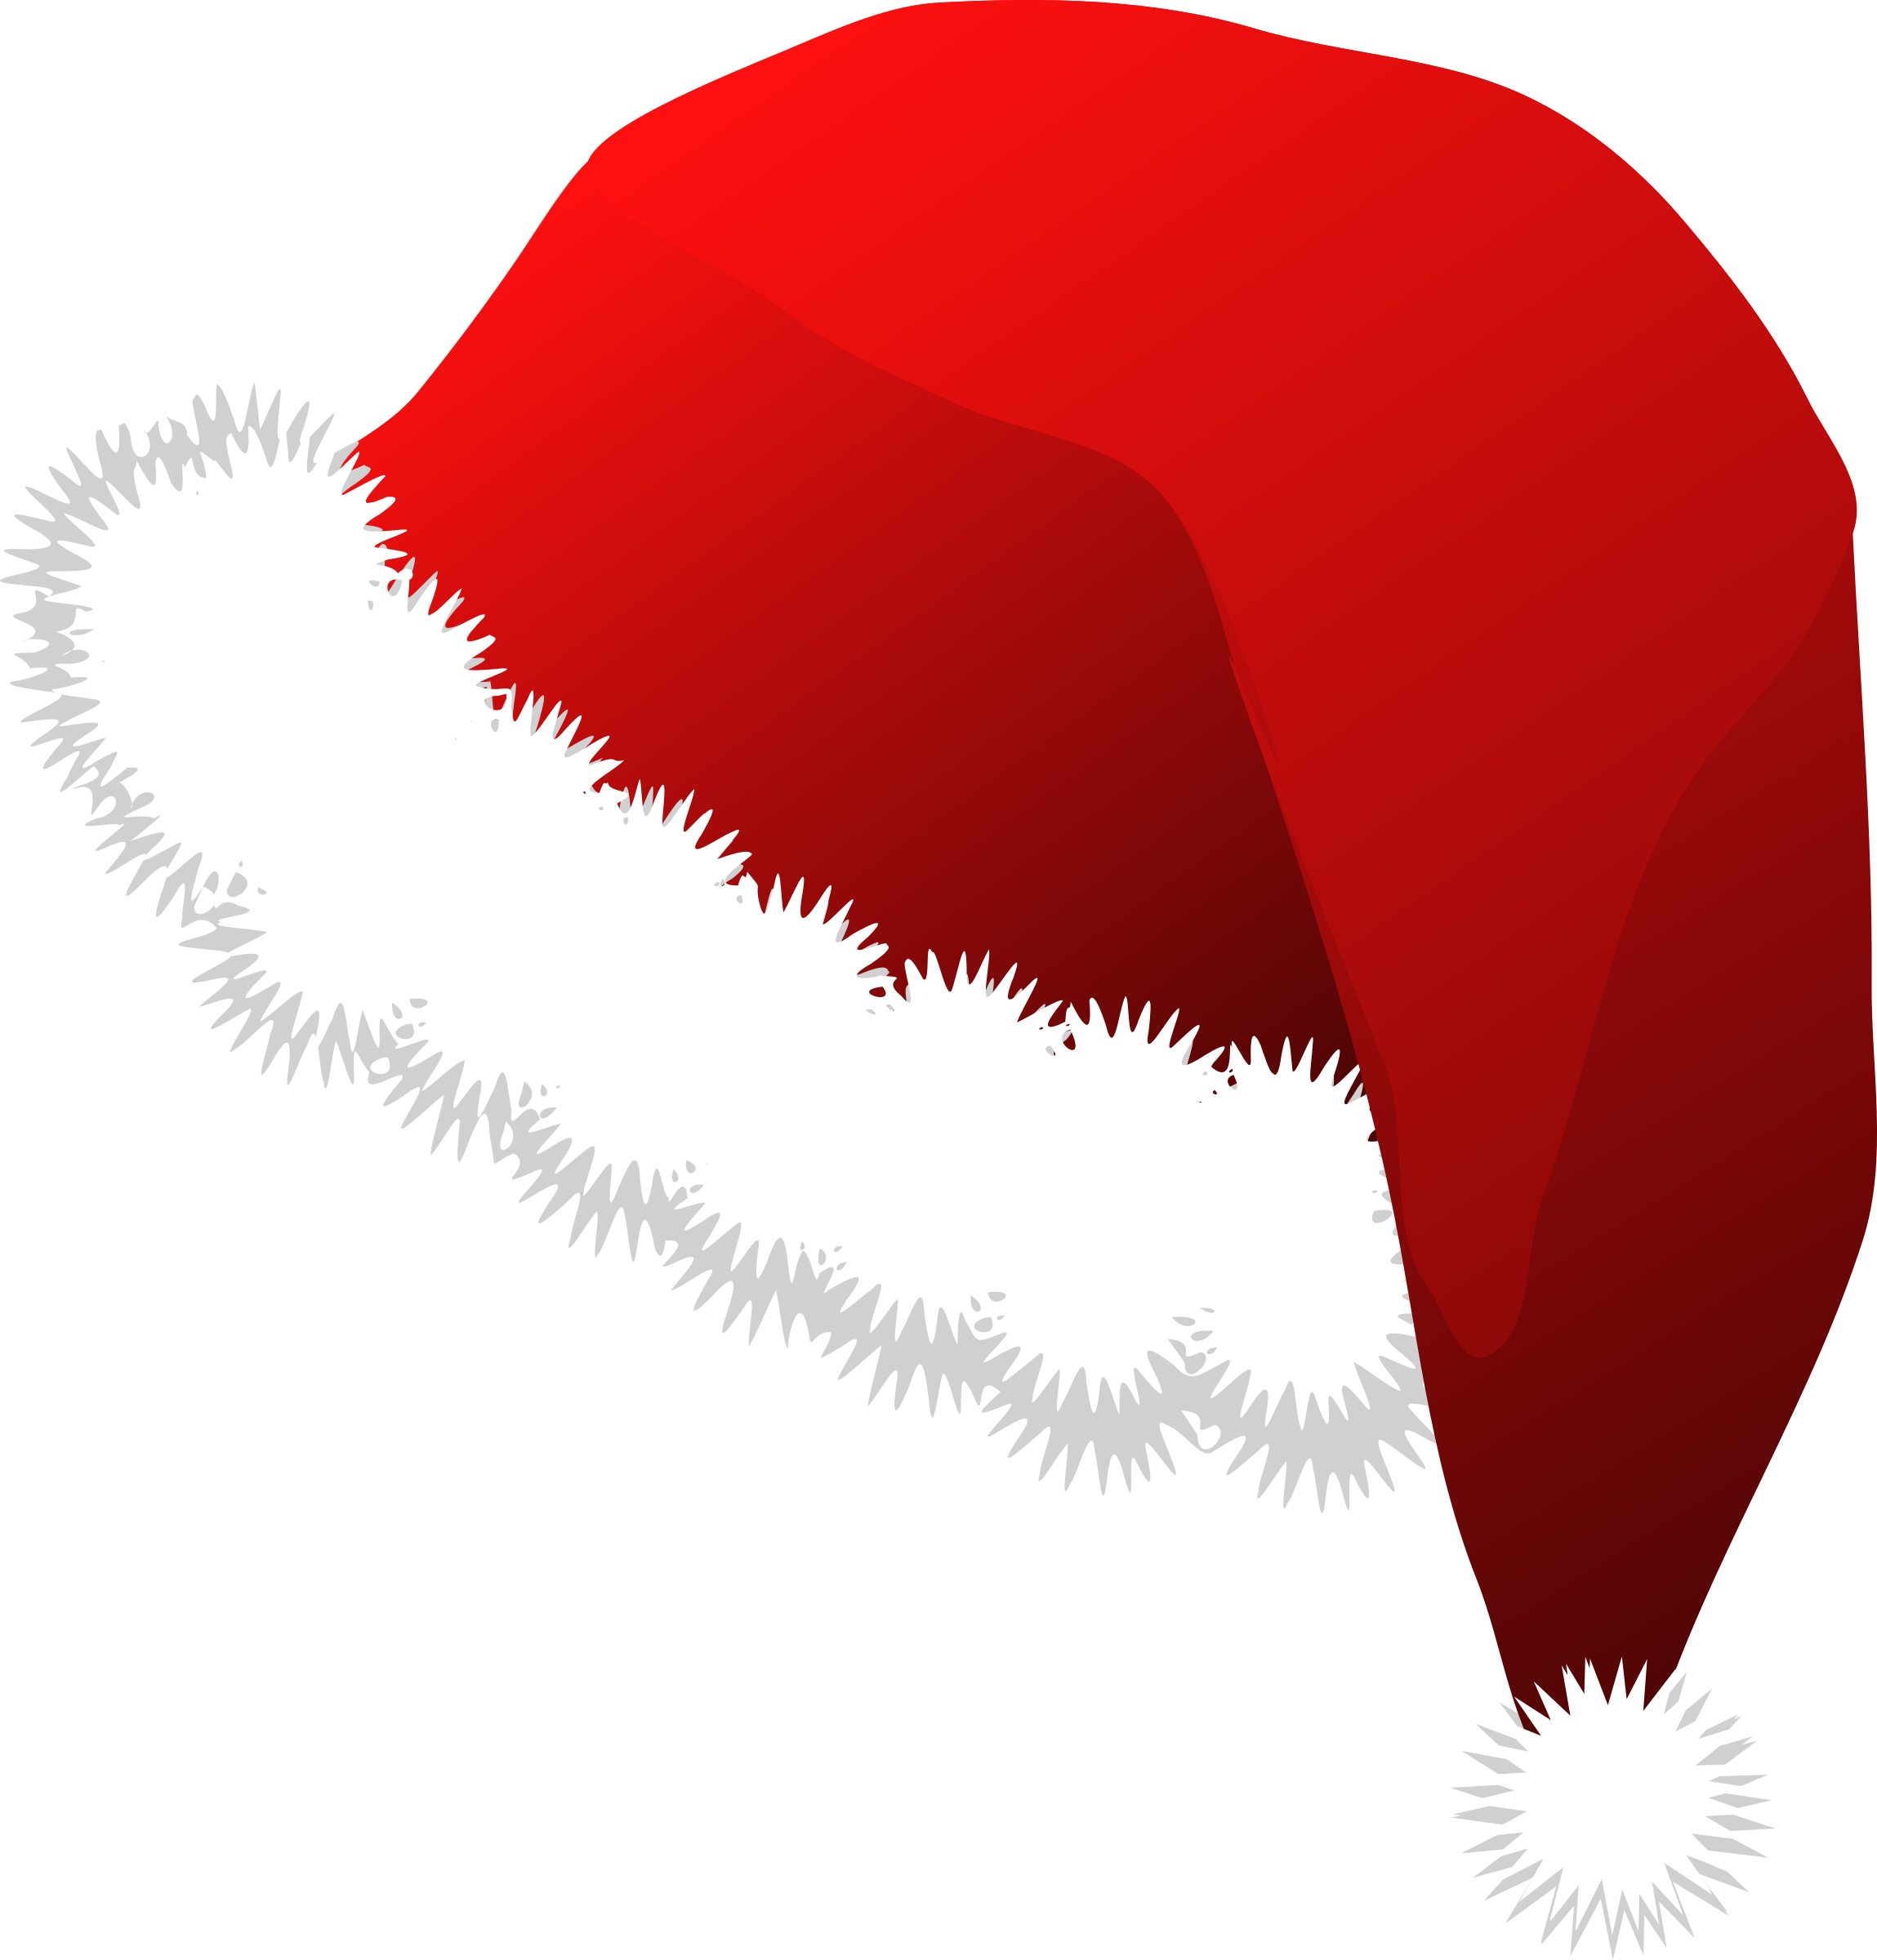 santa hat by mfiallo